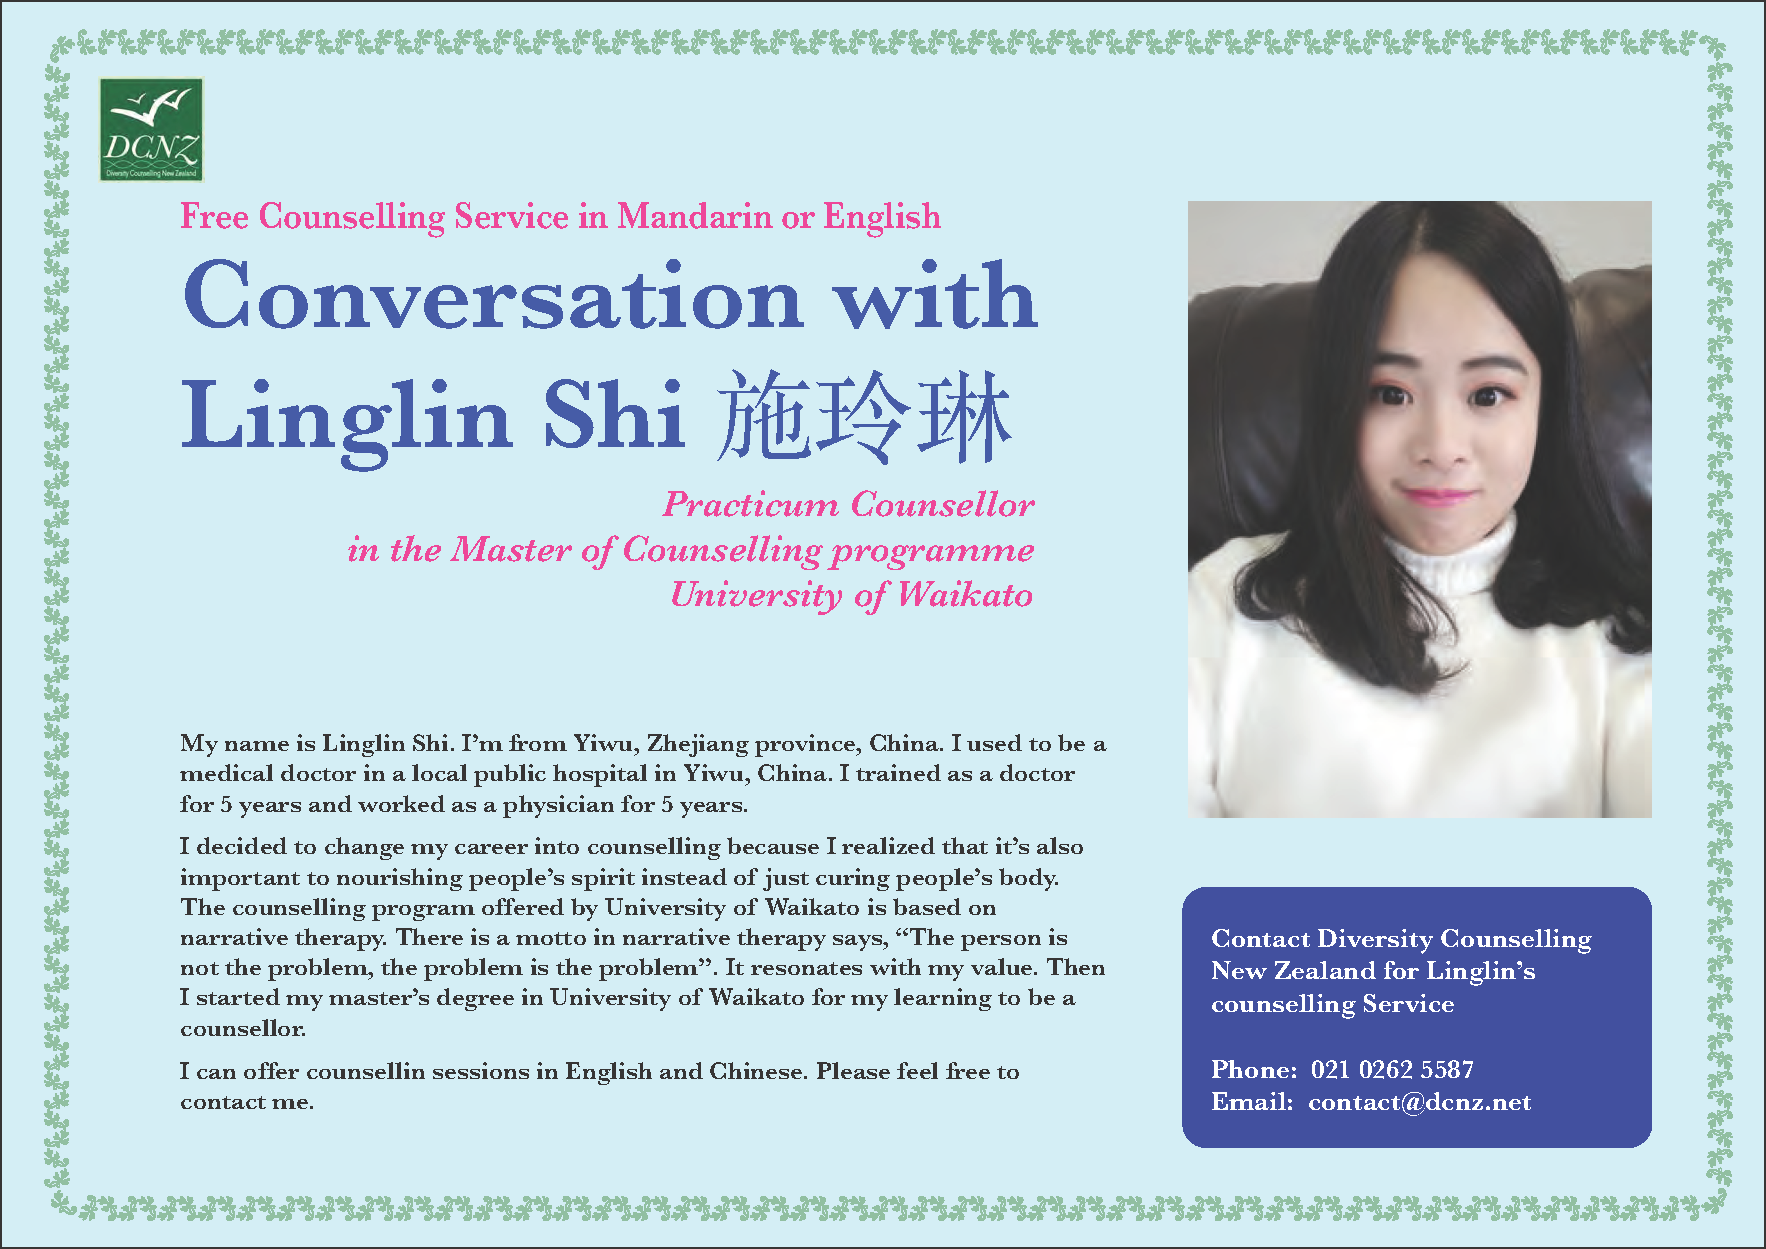 Free Counselling in English and Chinese with Linglin